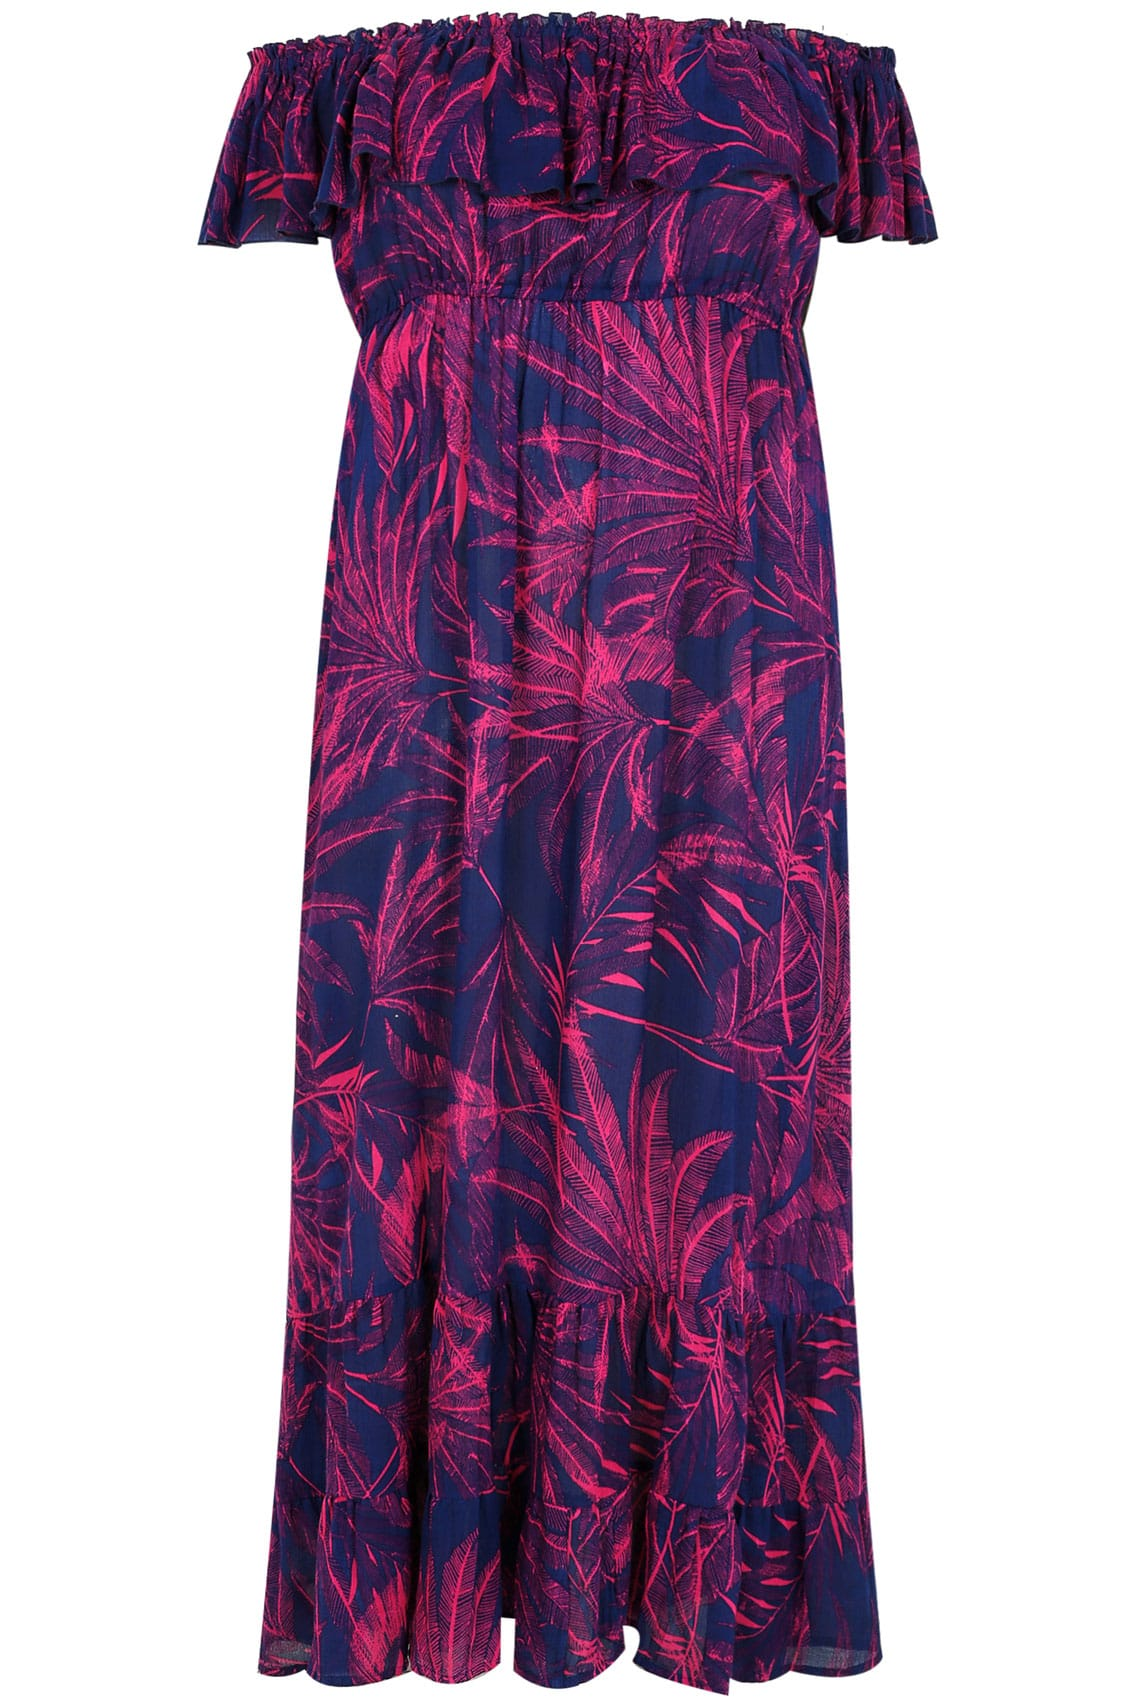 purple pink palm print frill maxi dress plus size 16 to 36. Black Bedroom Furniture Sets. Home Design Ideas